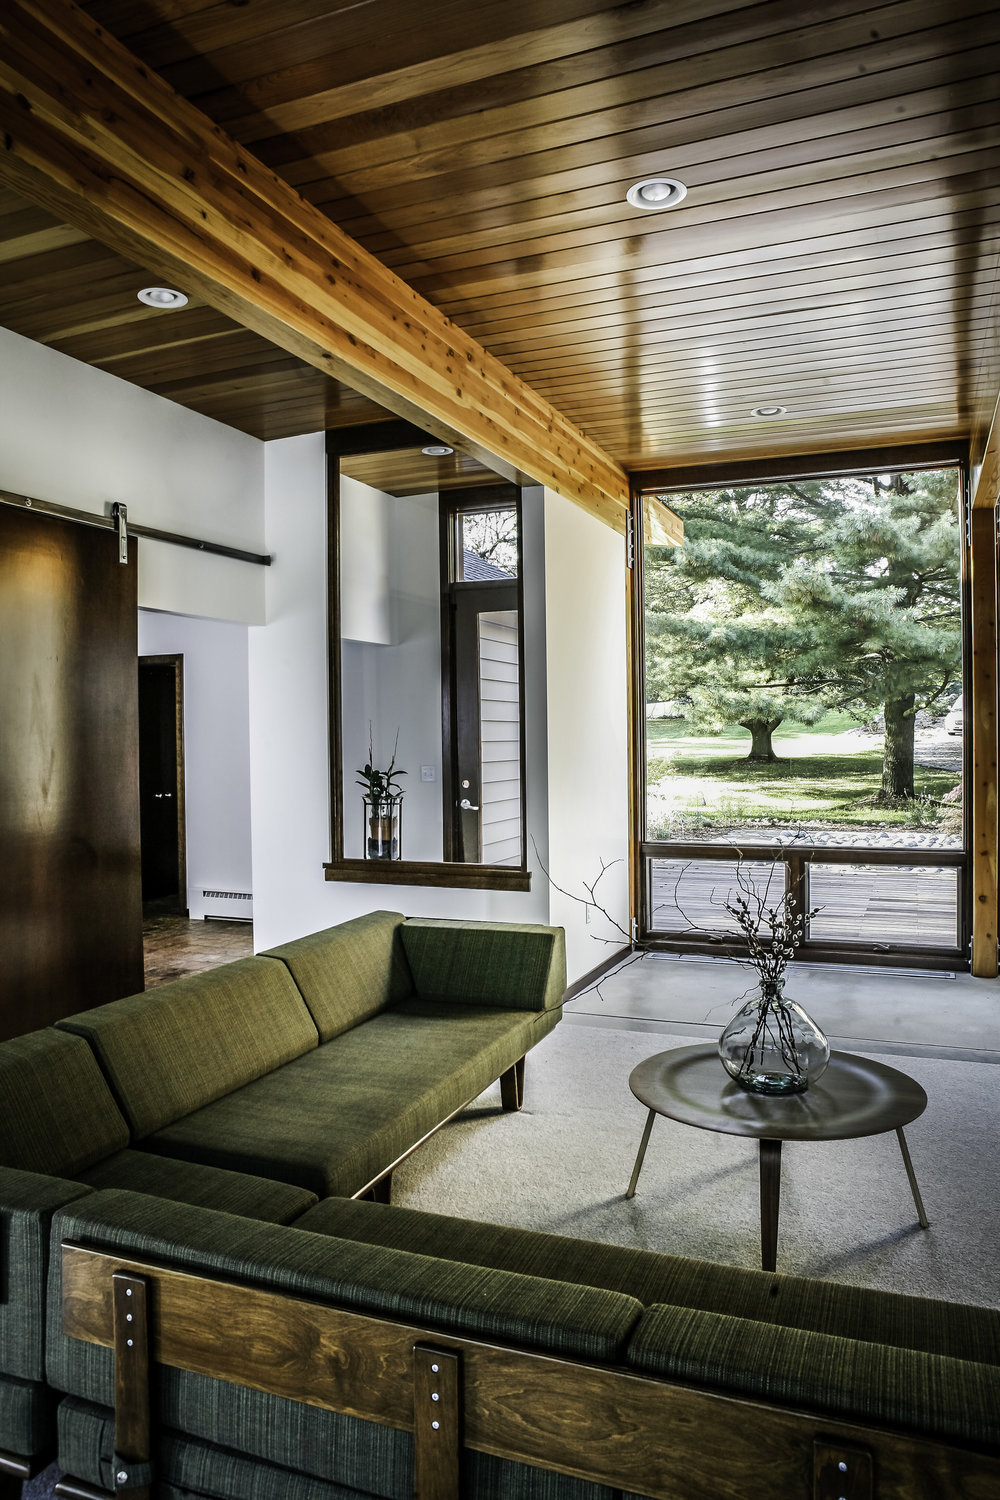 CARLSON RESIDENCE LR - OOMBRA ARCHITECTS